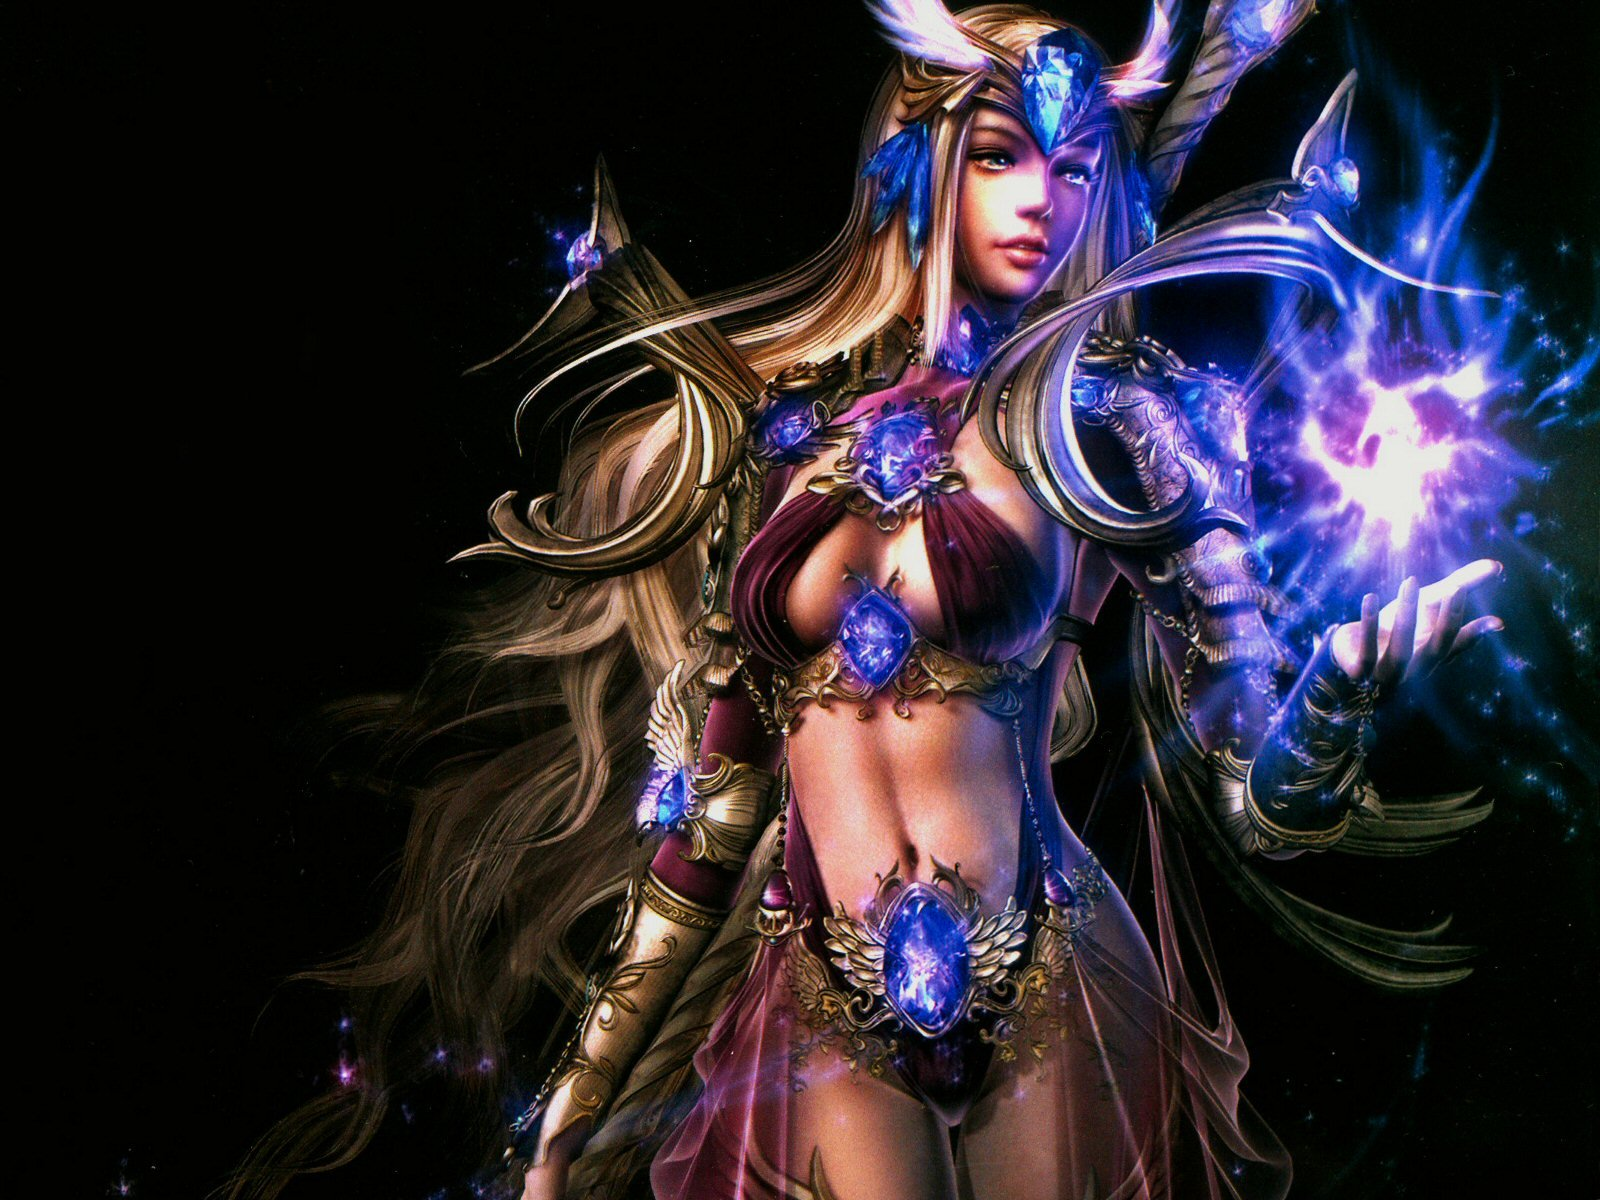 Gothic Fairy Wallpapers | Gothic Fairy Wallpapers | Gothic Wallpapers